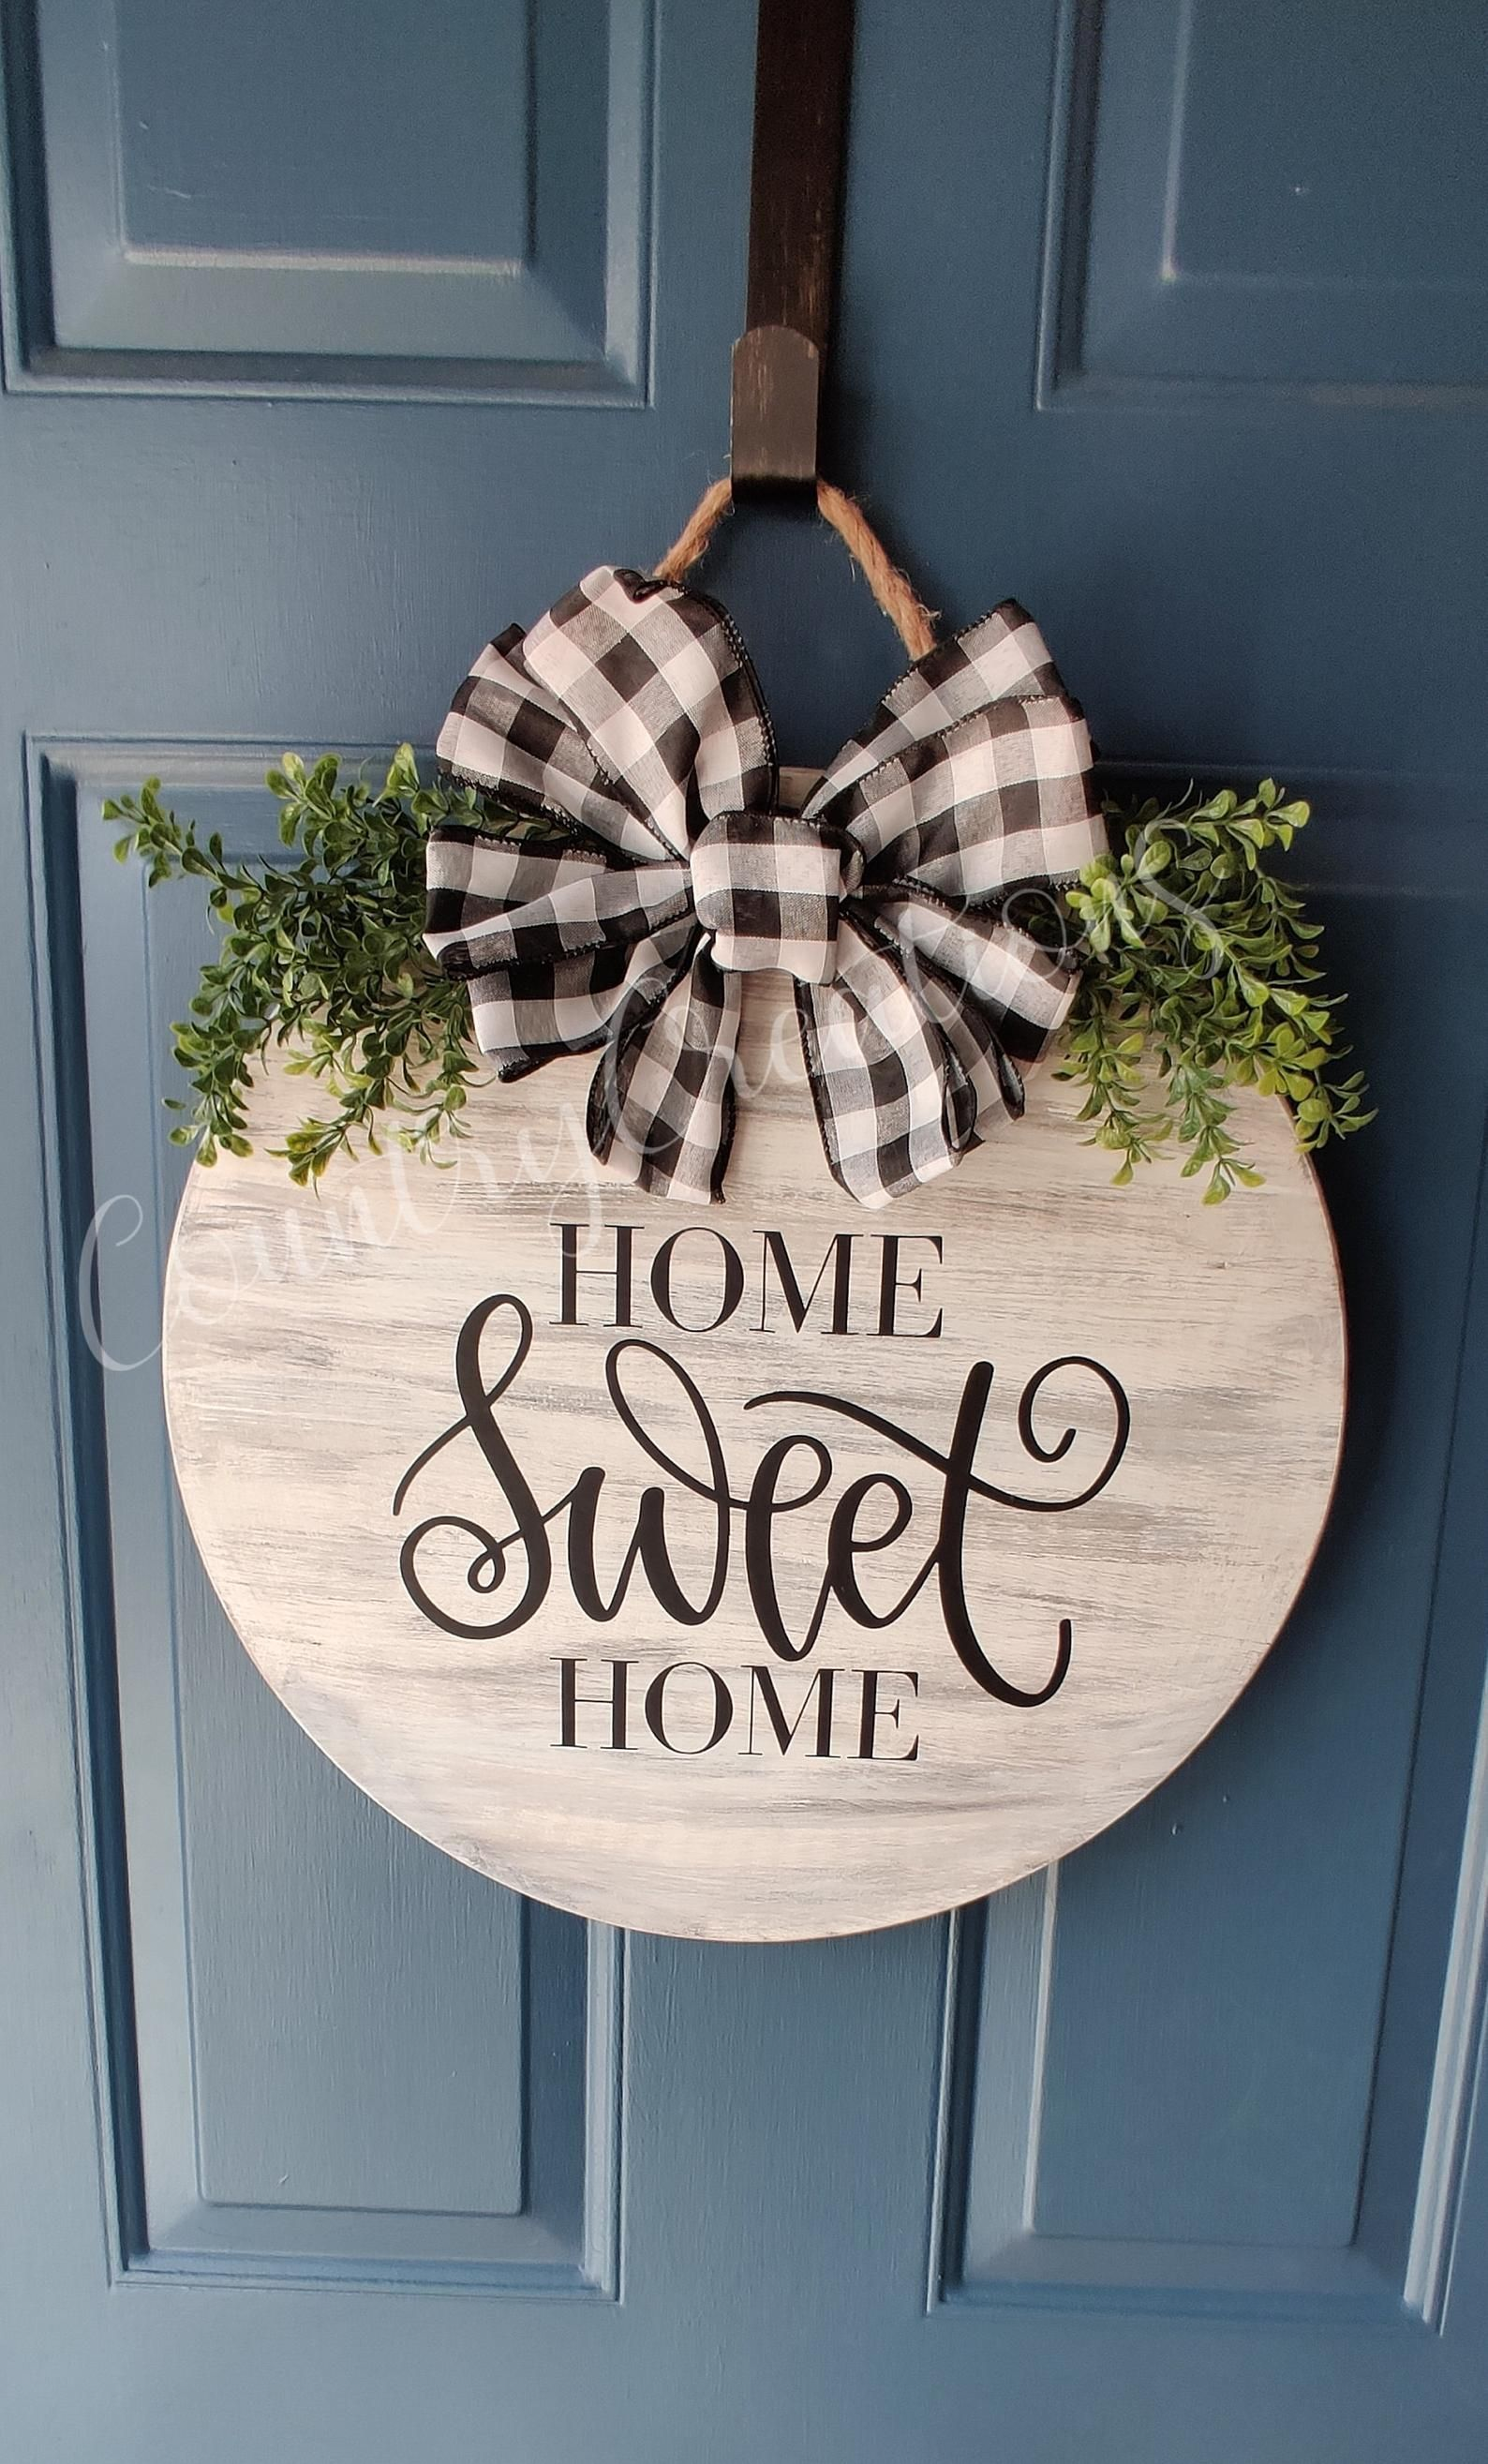 Door Decorationhome Sweet Home Round Front Door Sign Wood Etsy In 2020 Door Signs Diy Welcome Signs Front Door Front Door Decor